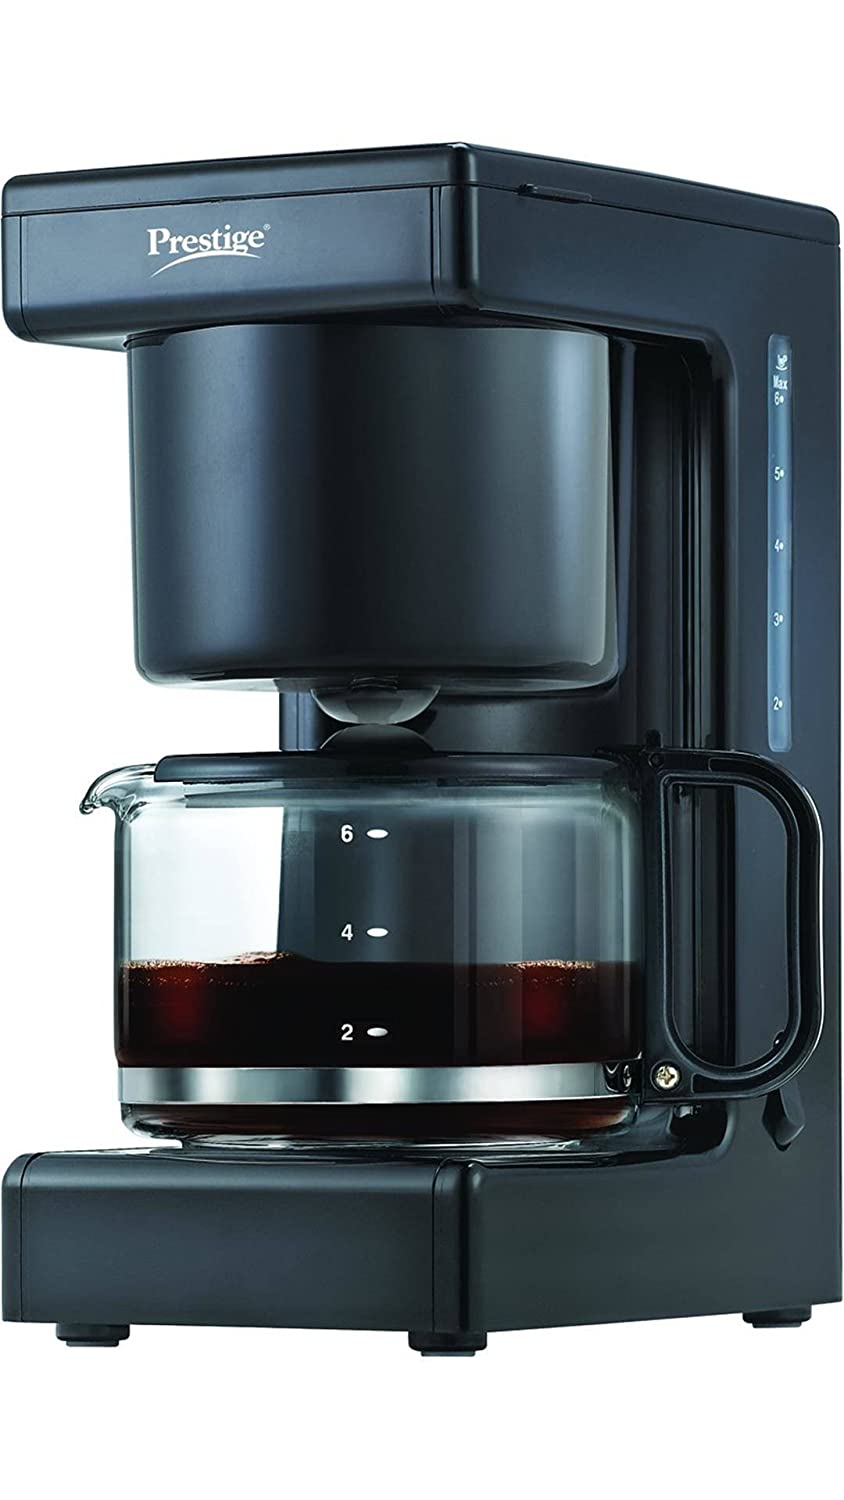 Prestige Kitchen Appliances Prestige Pcmd 10 Coffee Maker Amazonin Home Kitchen